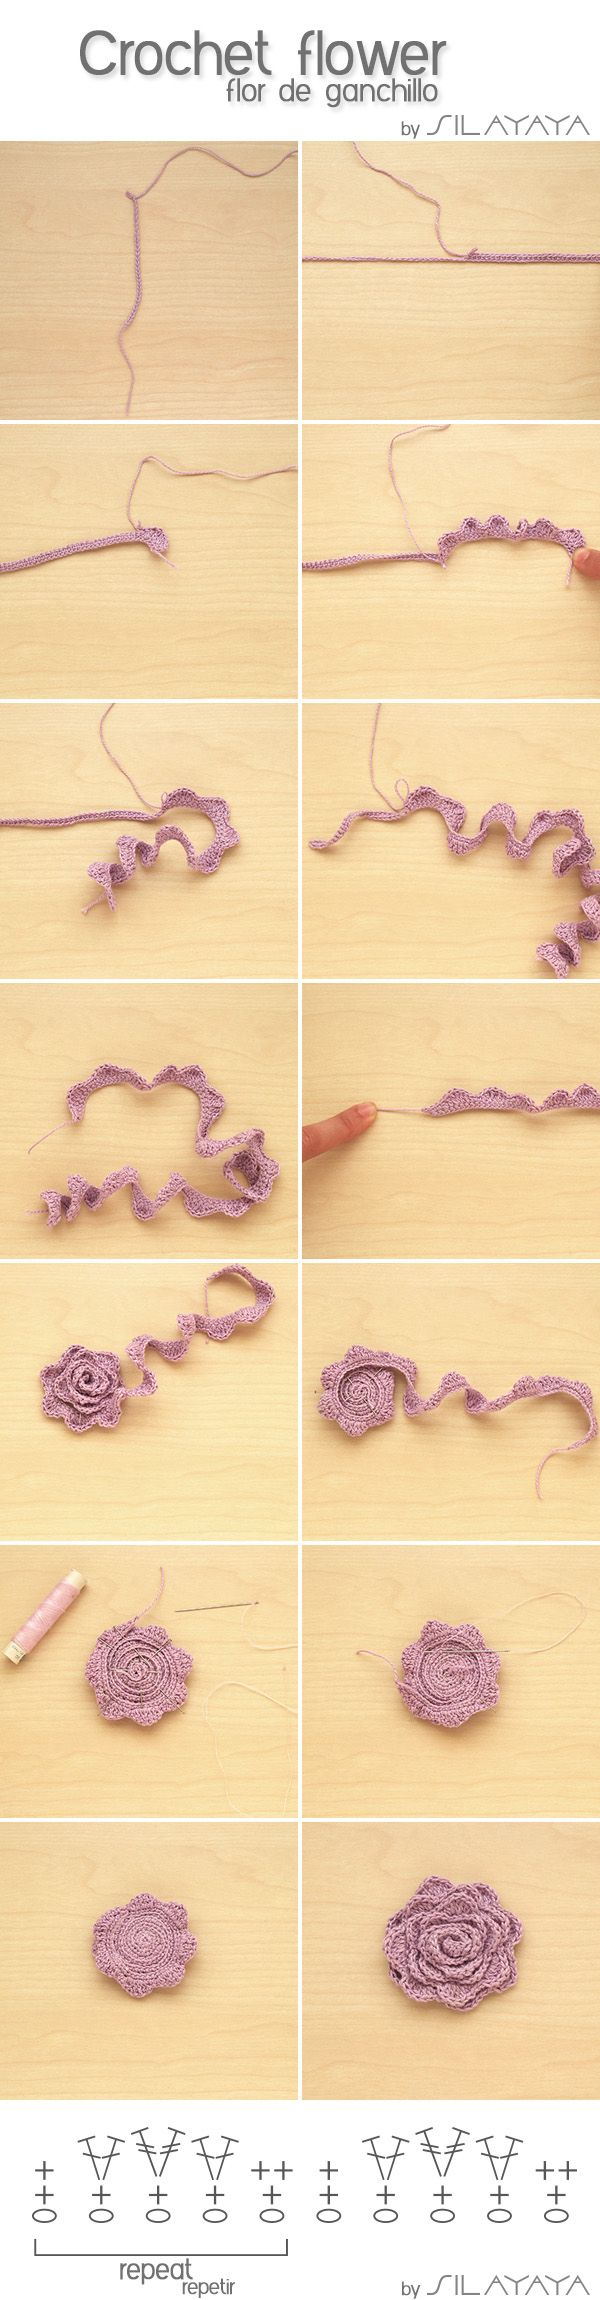 Tutorial How to crochet a flower - Tutorial Flor de ganchillo by SILAYAYA